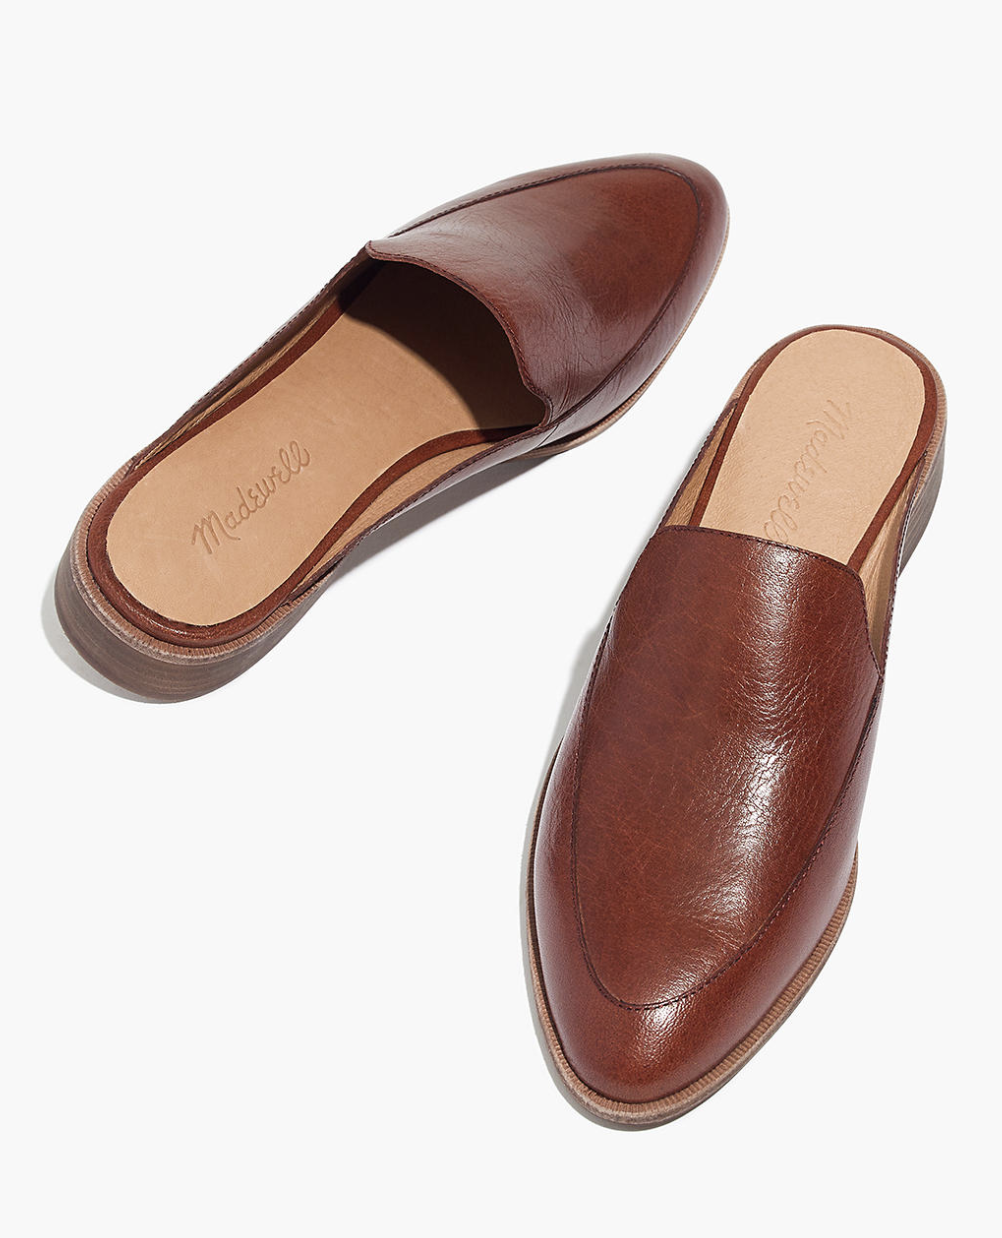 mahogany loafers with an open back and a slightly pointed toe